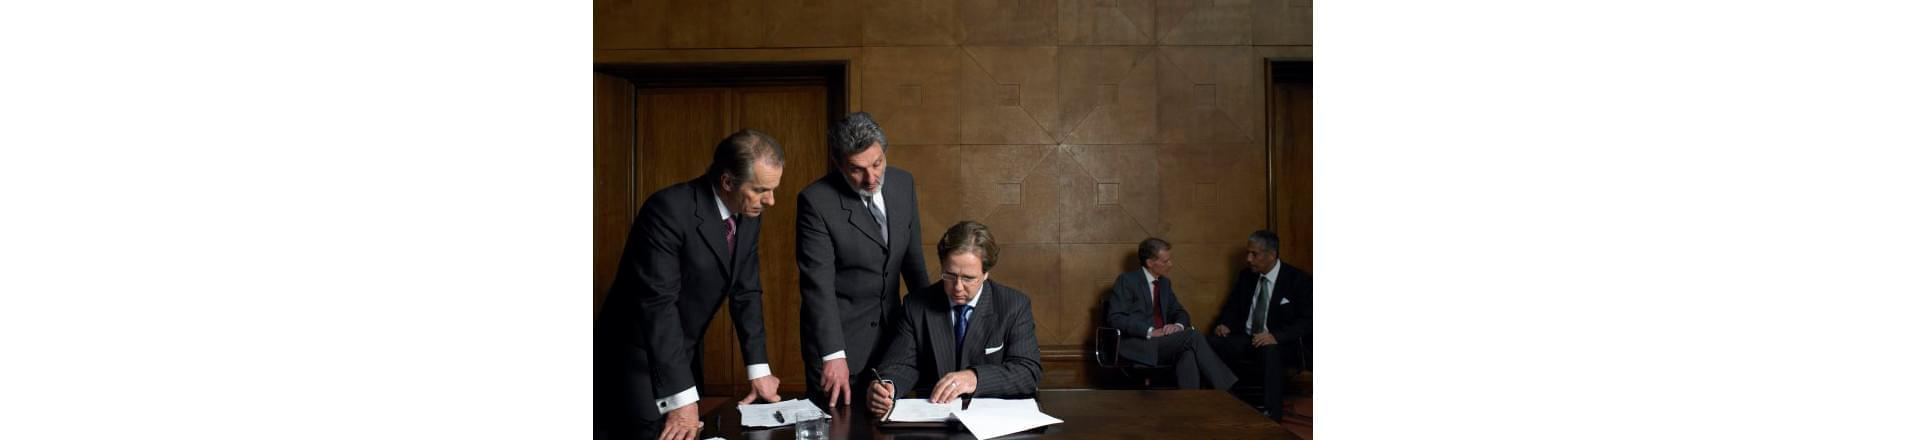 Group of men in suits stood and sat around a table with papers in front of them